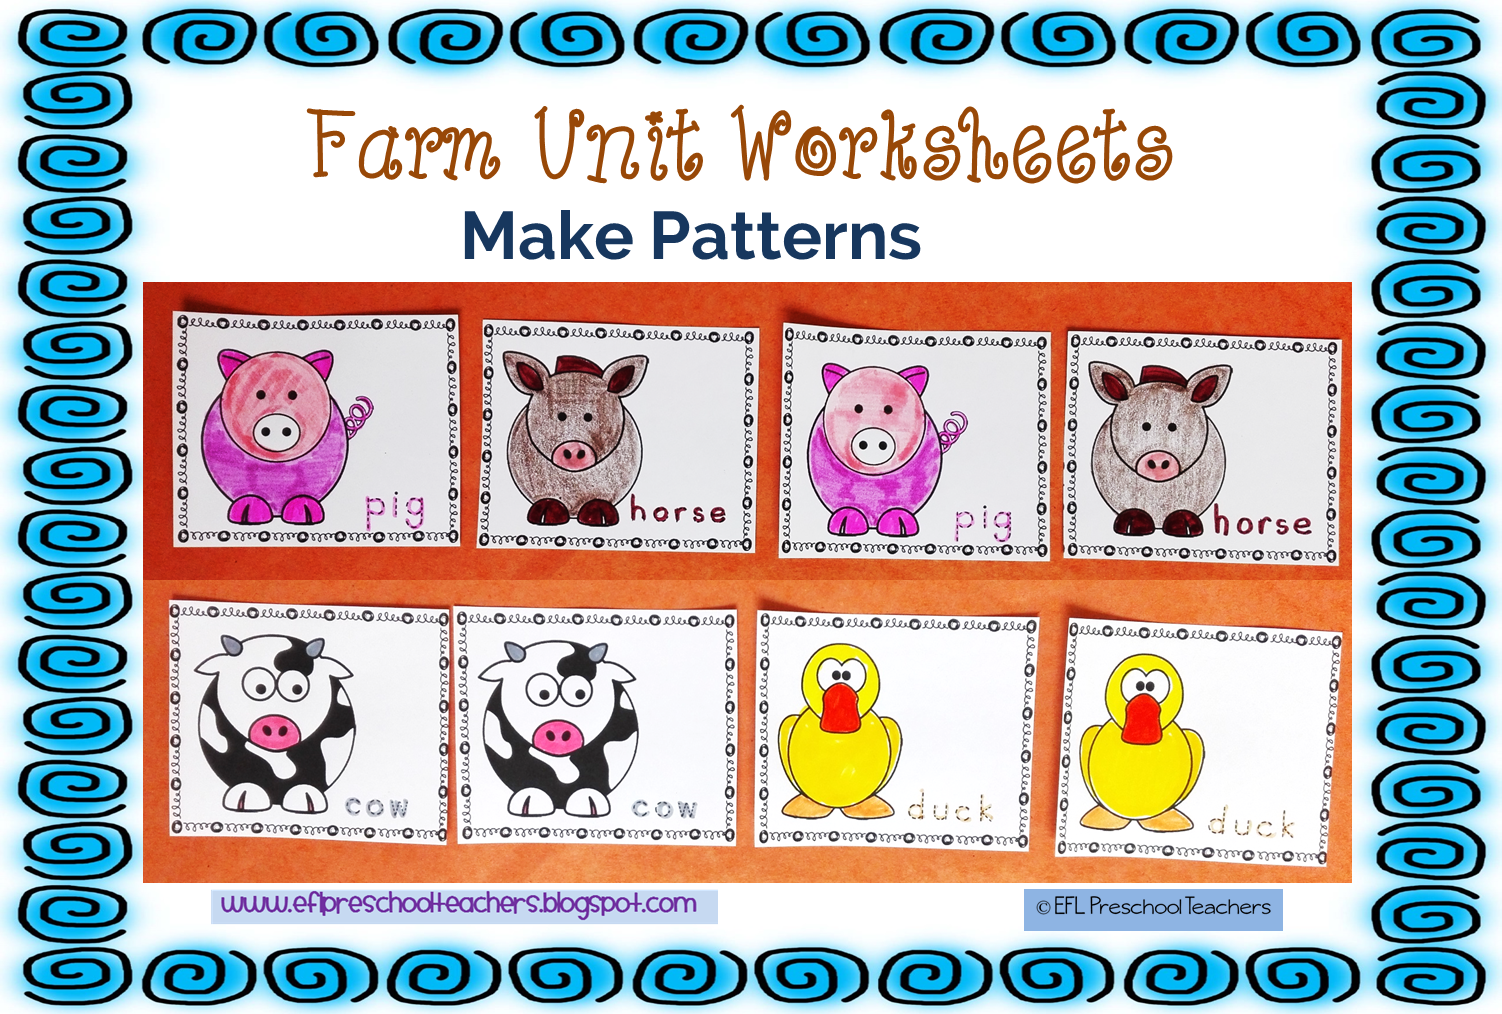 Esl Efl Preschool Teachers Farm Animals Theme For